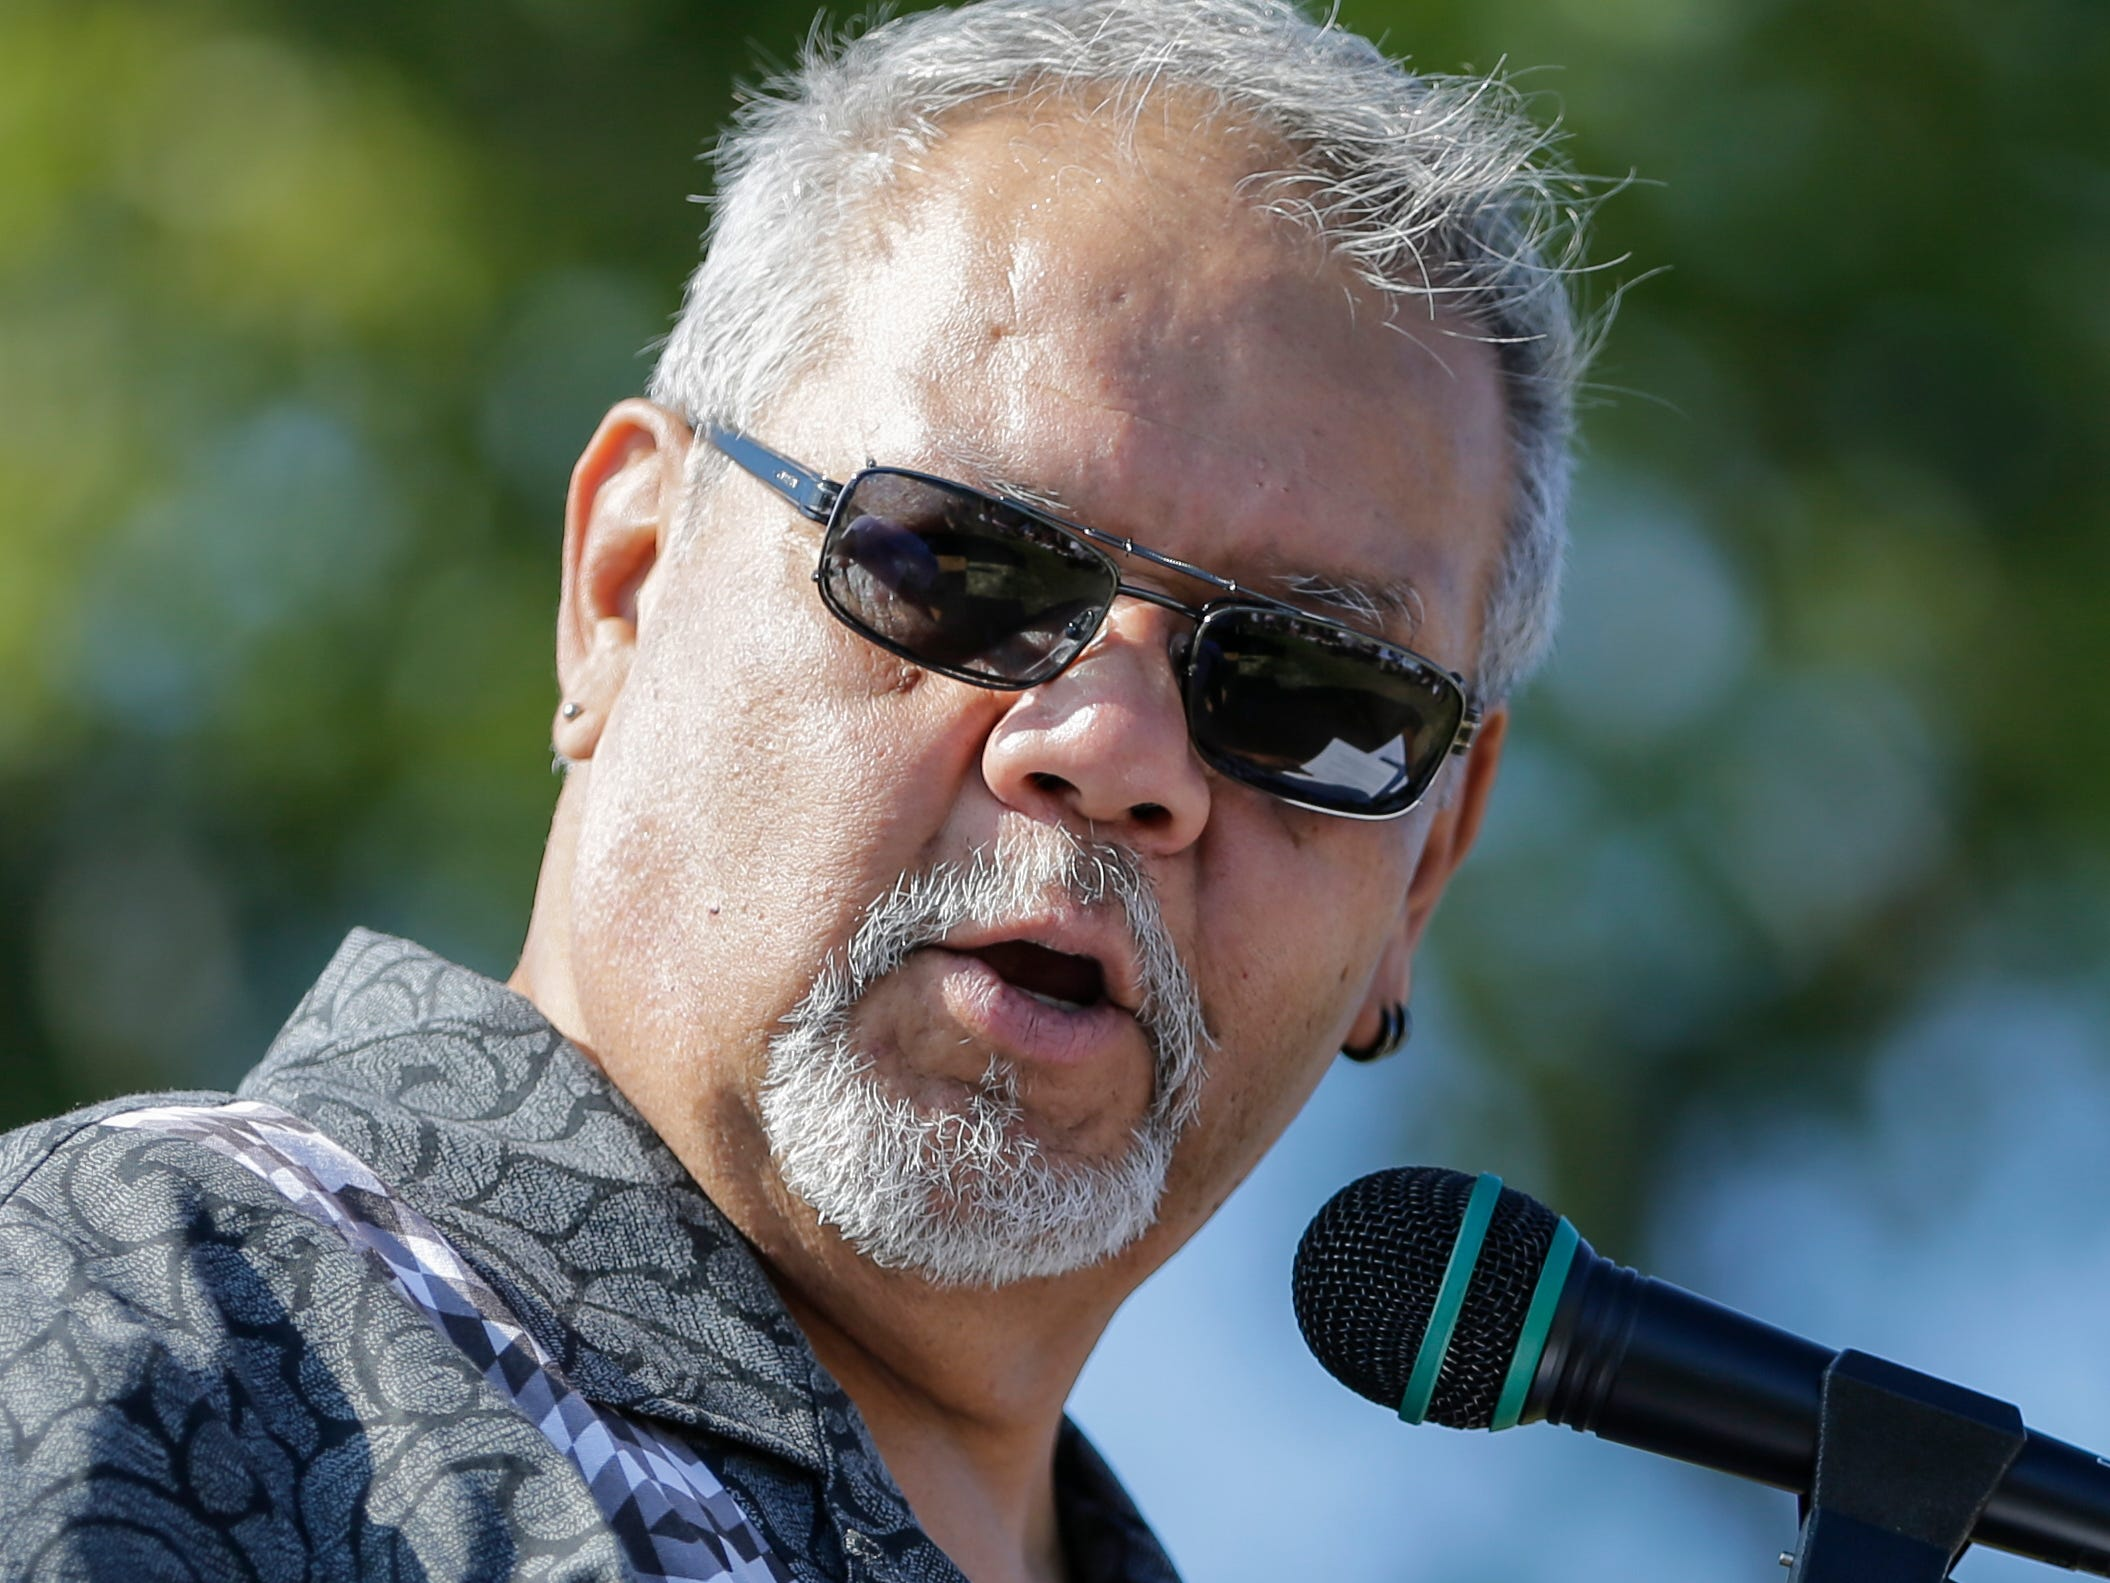 Ken Meshigaud, great-great-grandson of Chief Mishicot, speaks during the Spirit of the Rivers monument dedication Sunday, Sept. 16, 2018, in Two Rivers, Wis.